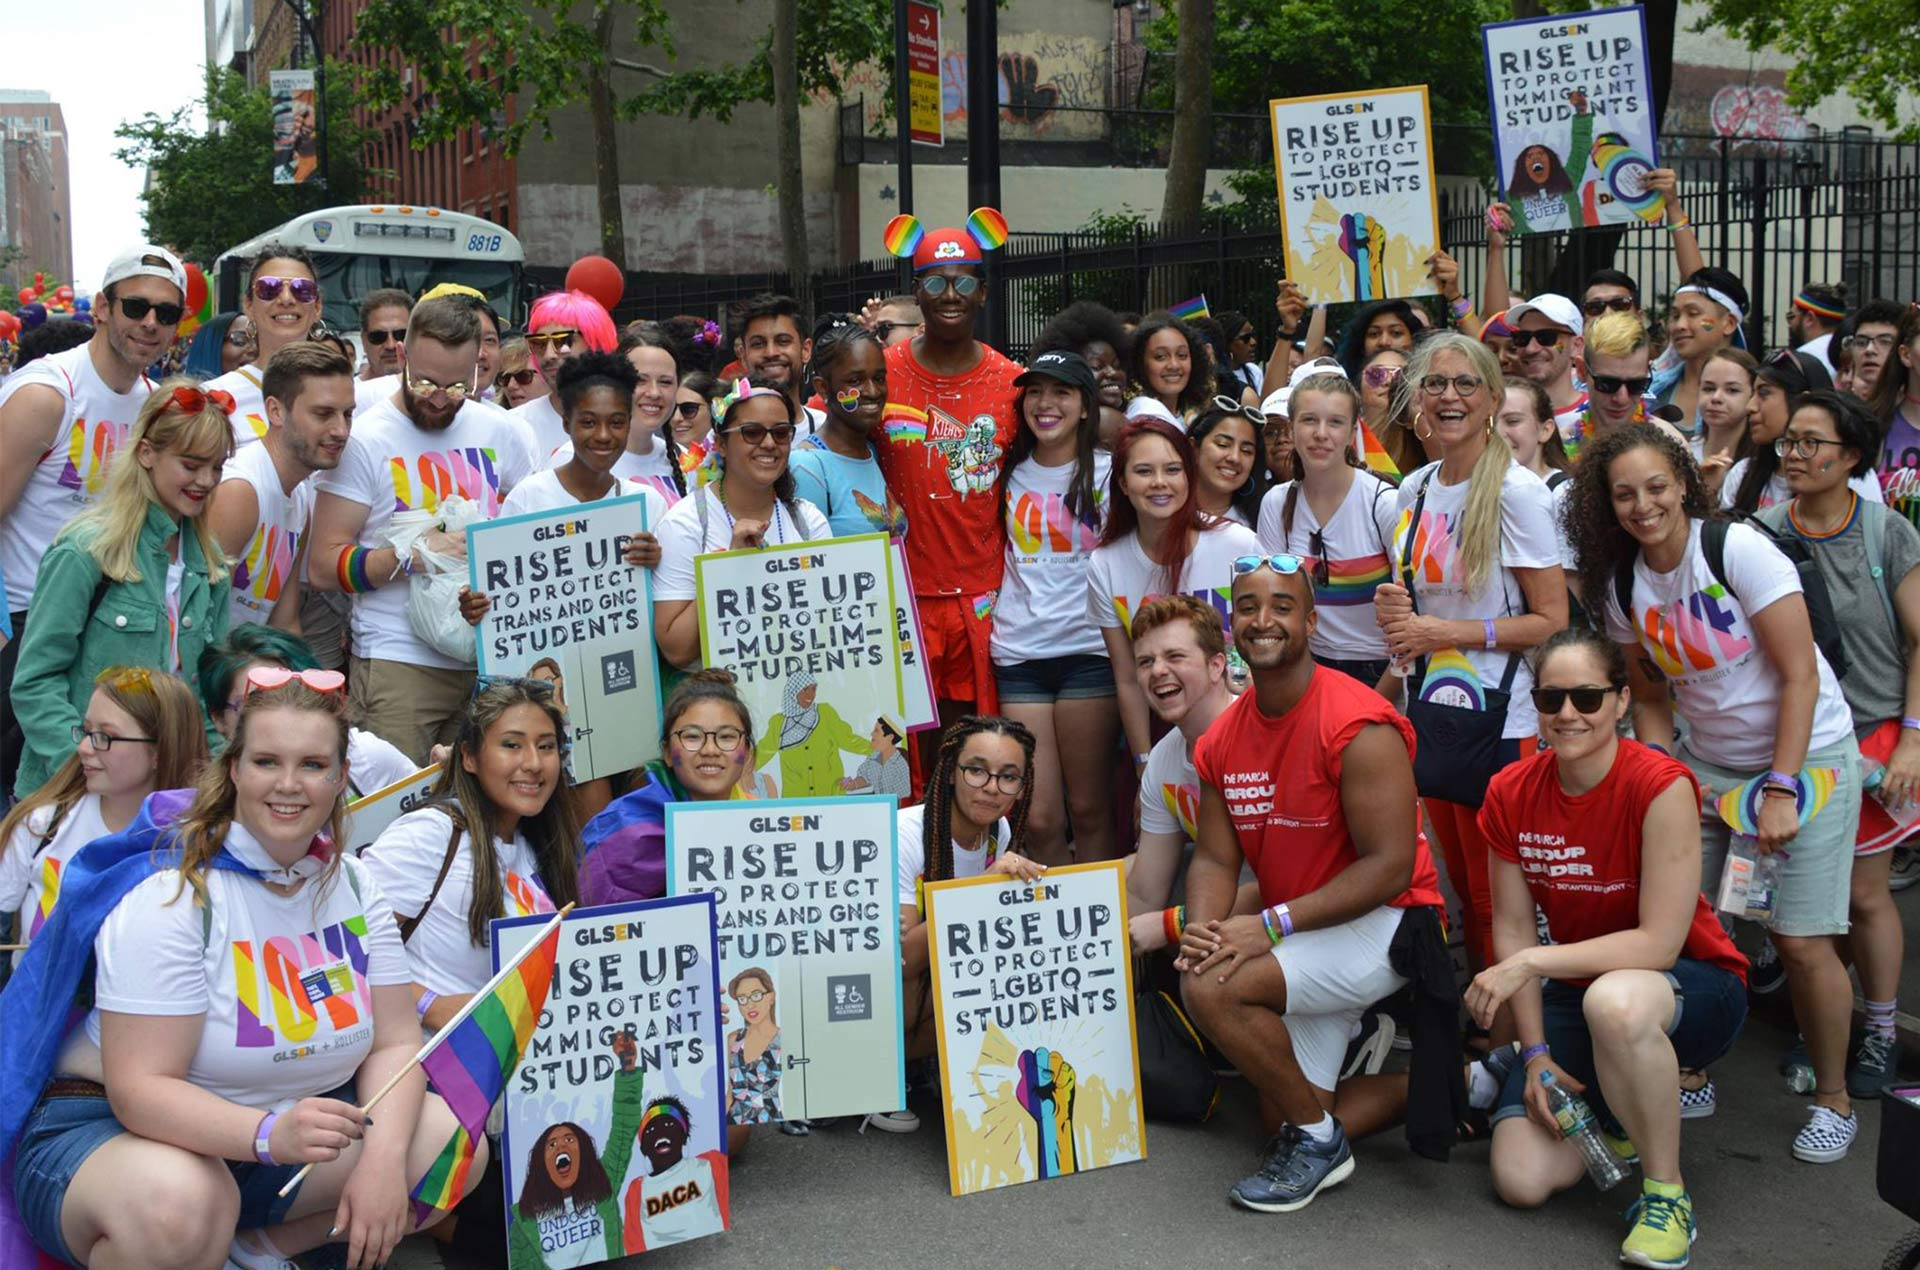 Posed photo of LGBTQ youth with signage